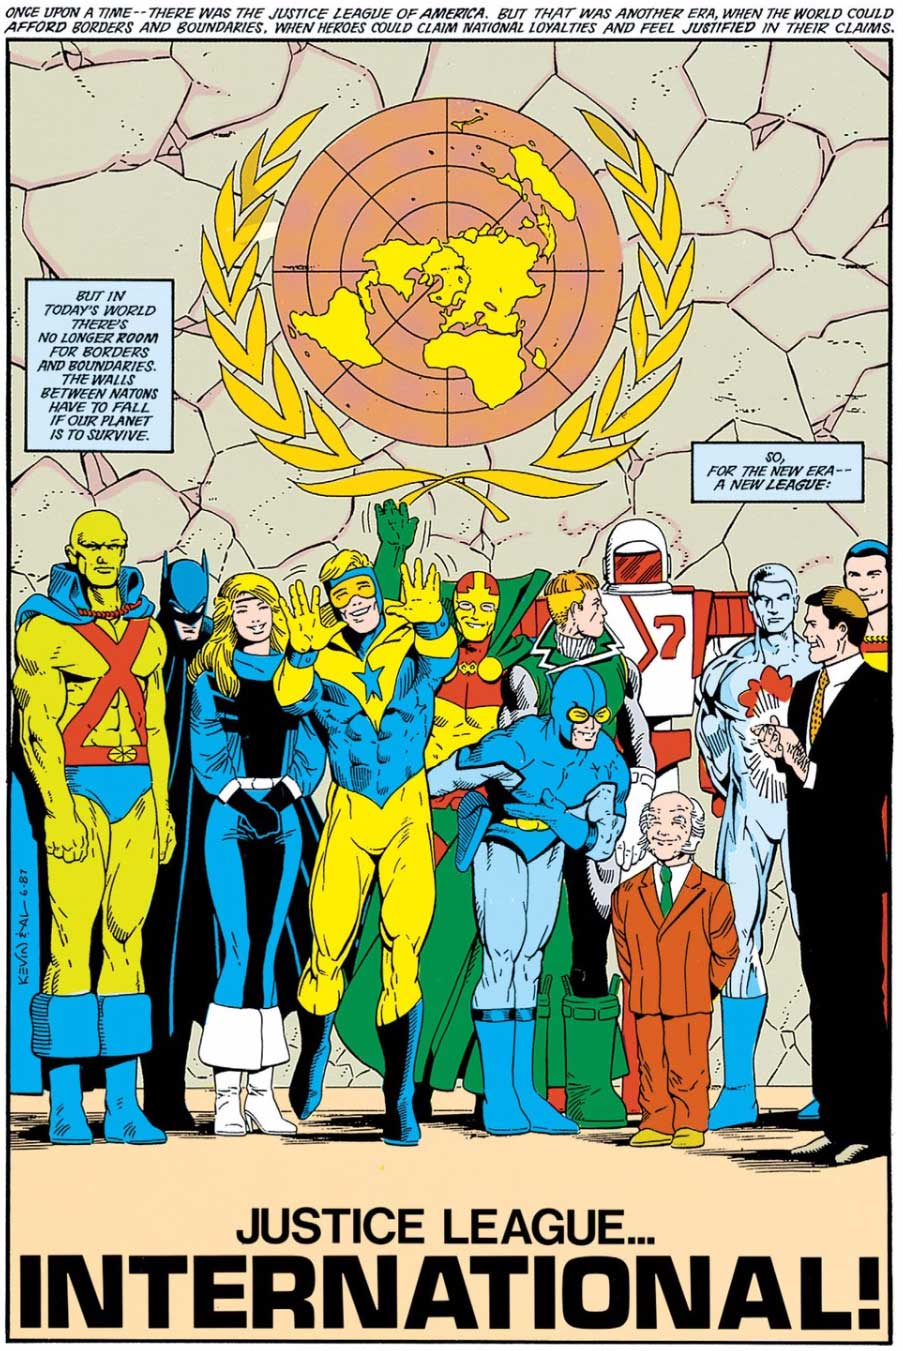 Justice League International #7 by Keith Giffen, J.M. DeMatteis, Kevin Maguire, and Al Gordon